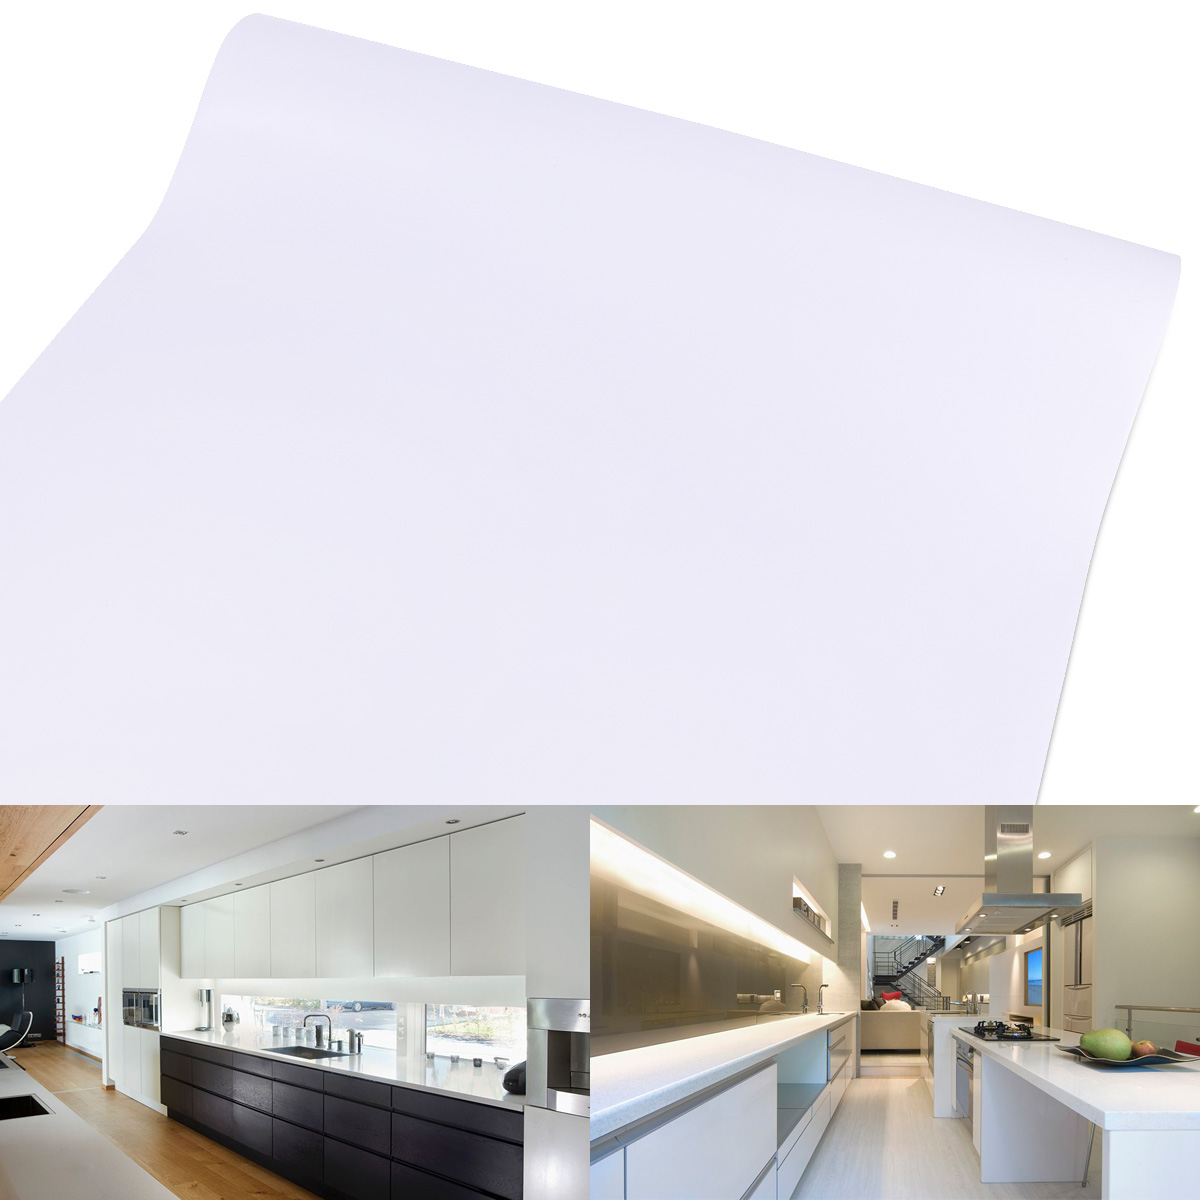 Dust Covers For Kitchen Appliances Uk